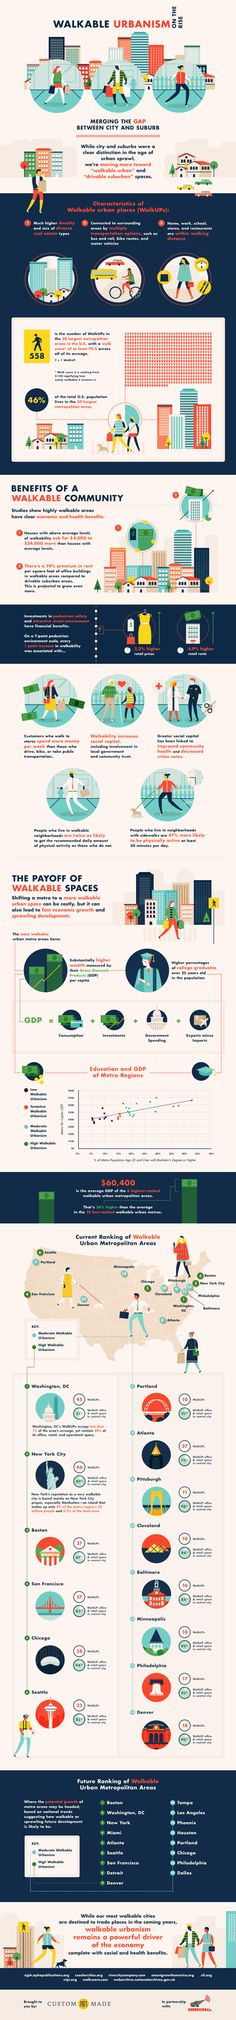 Walkable Urbanism on the Rise Infographic